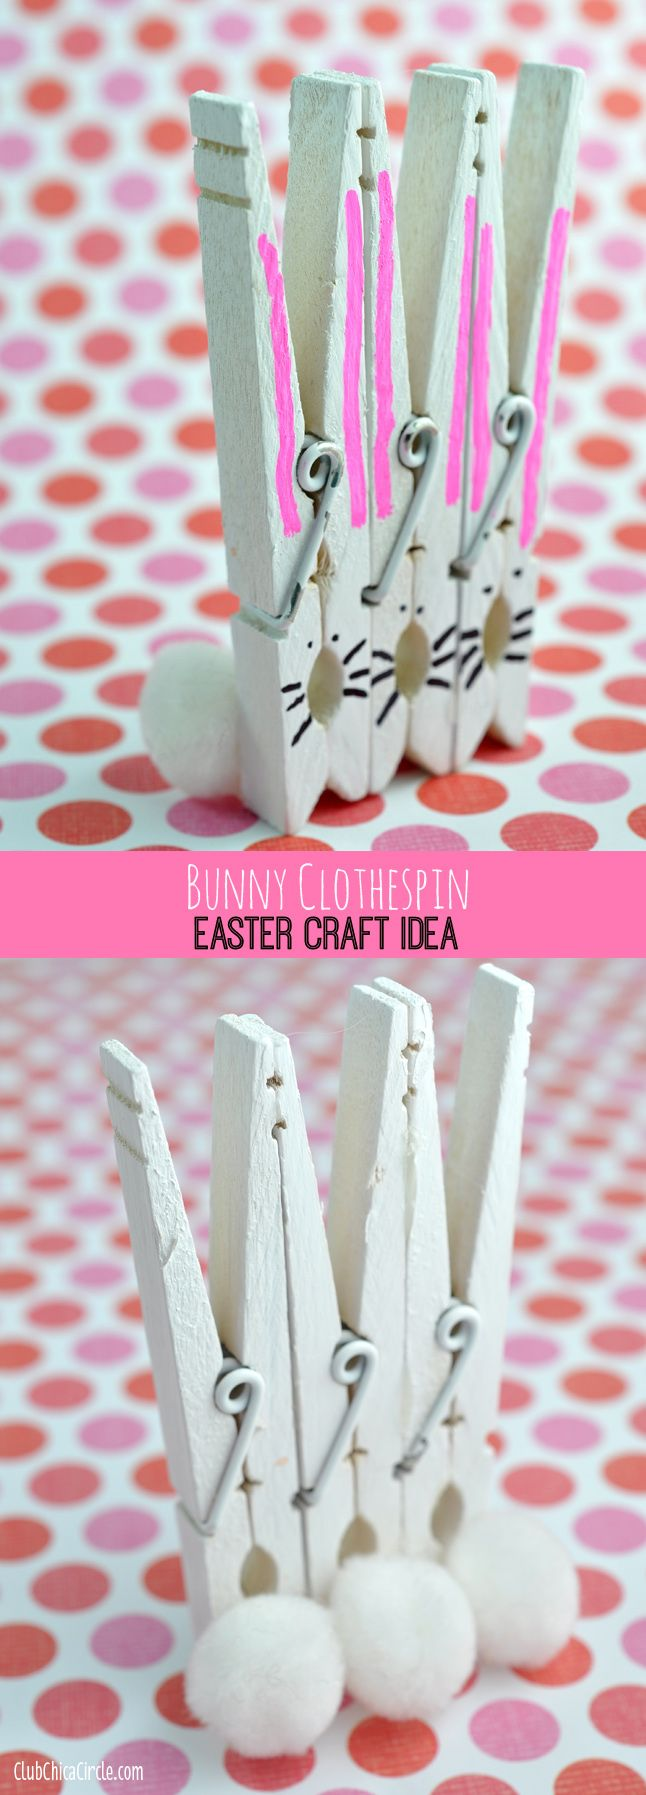 Easter craft ideas for toddlers - Bunny Clothespins Easter Craft Idea And Diy Club Chica Circle Where Crafty Is Contagious Easter Crafts Kidseaster